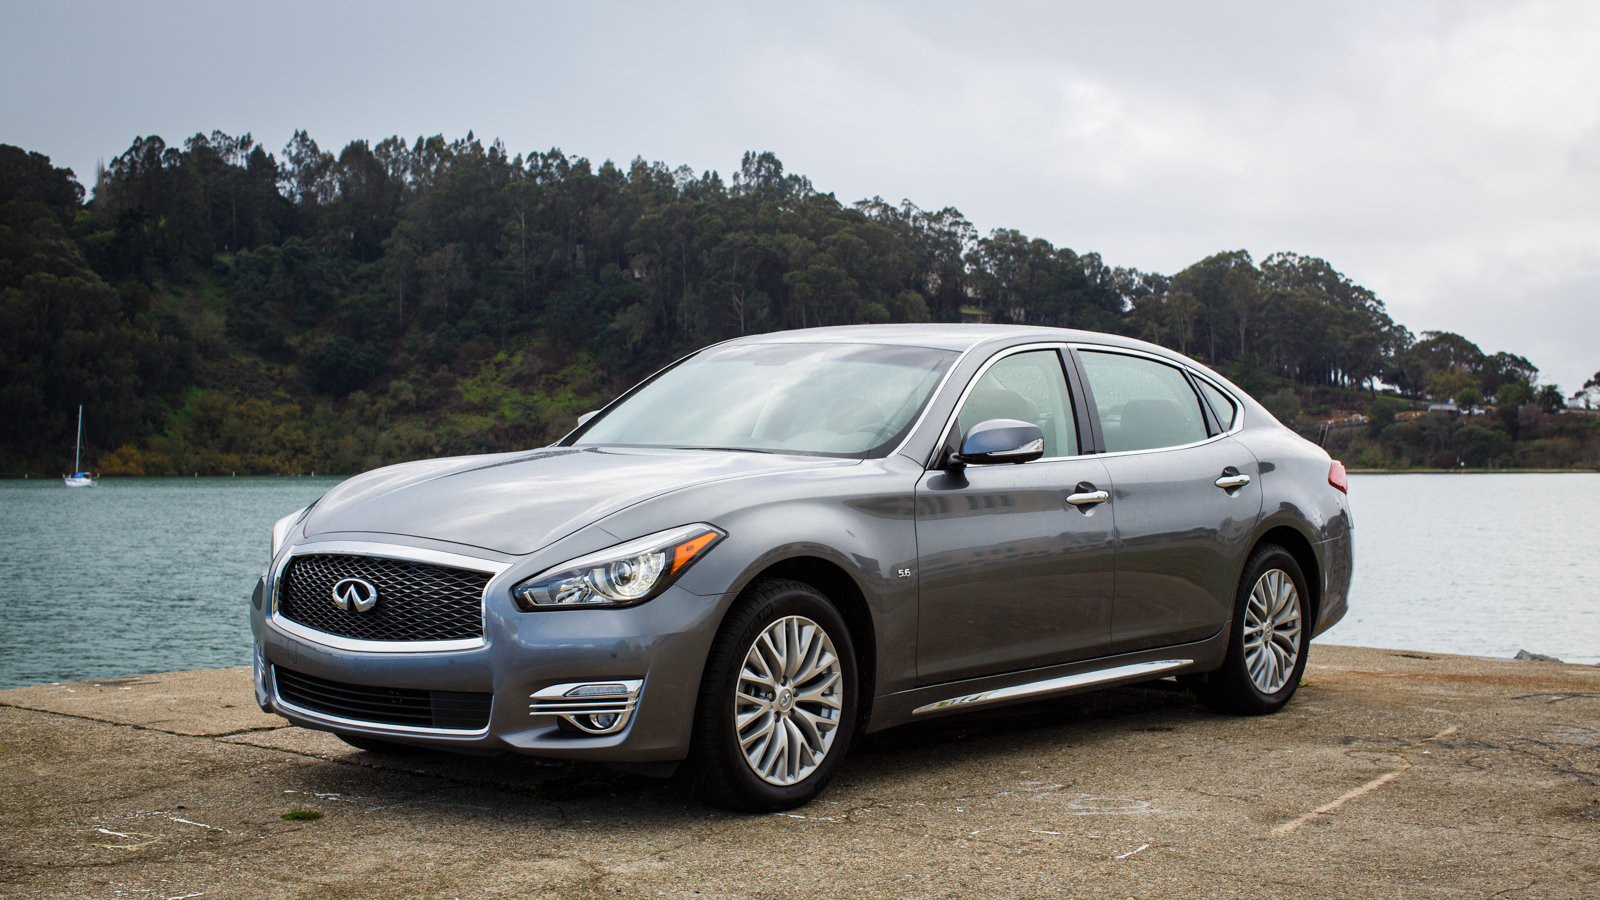 Most Reliable: Infiniti Q70